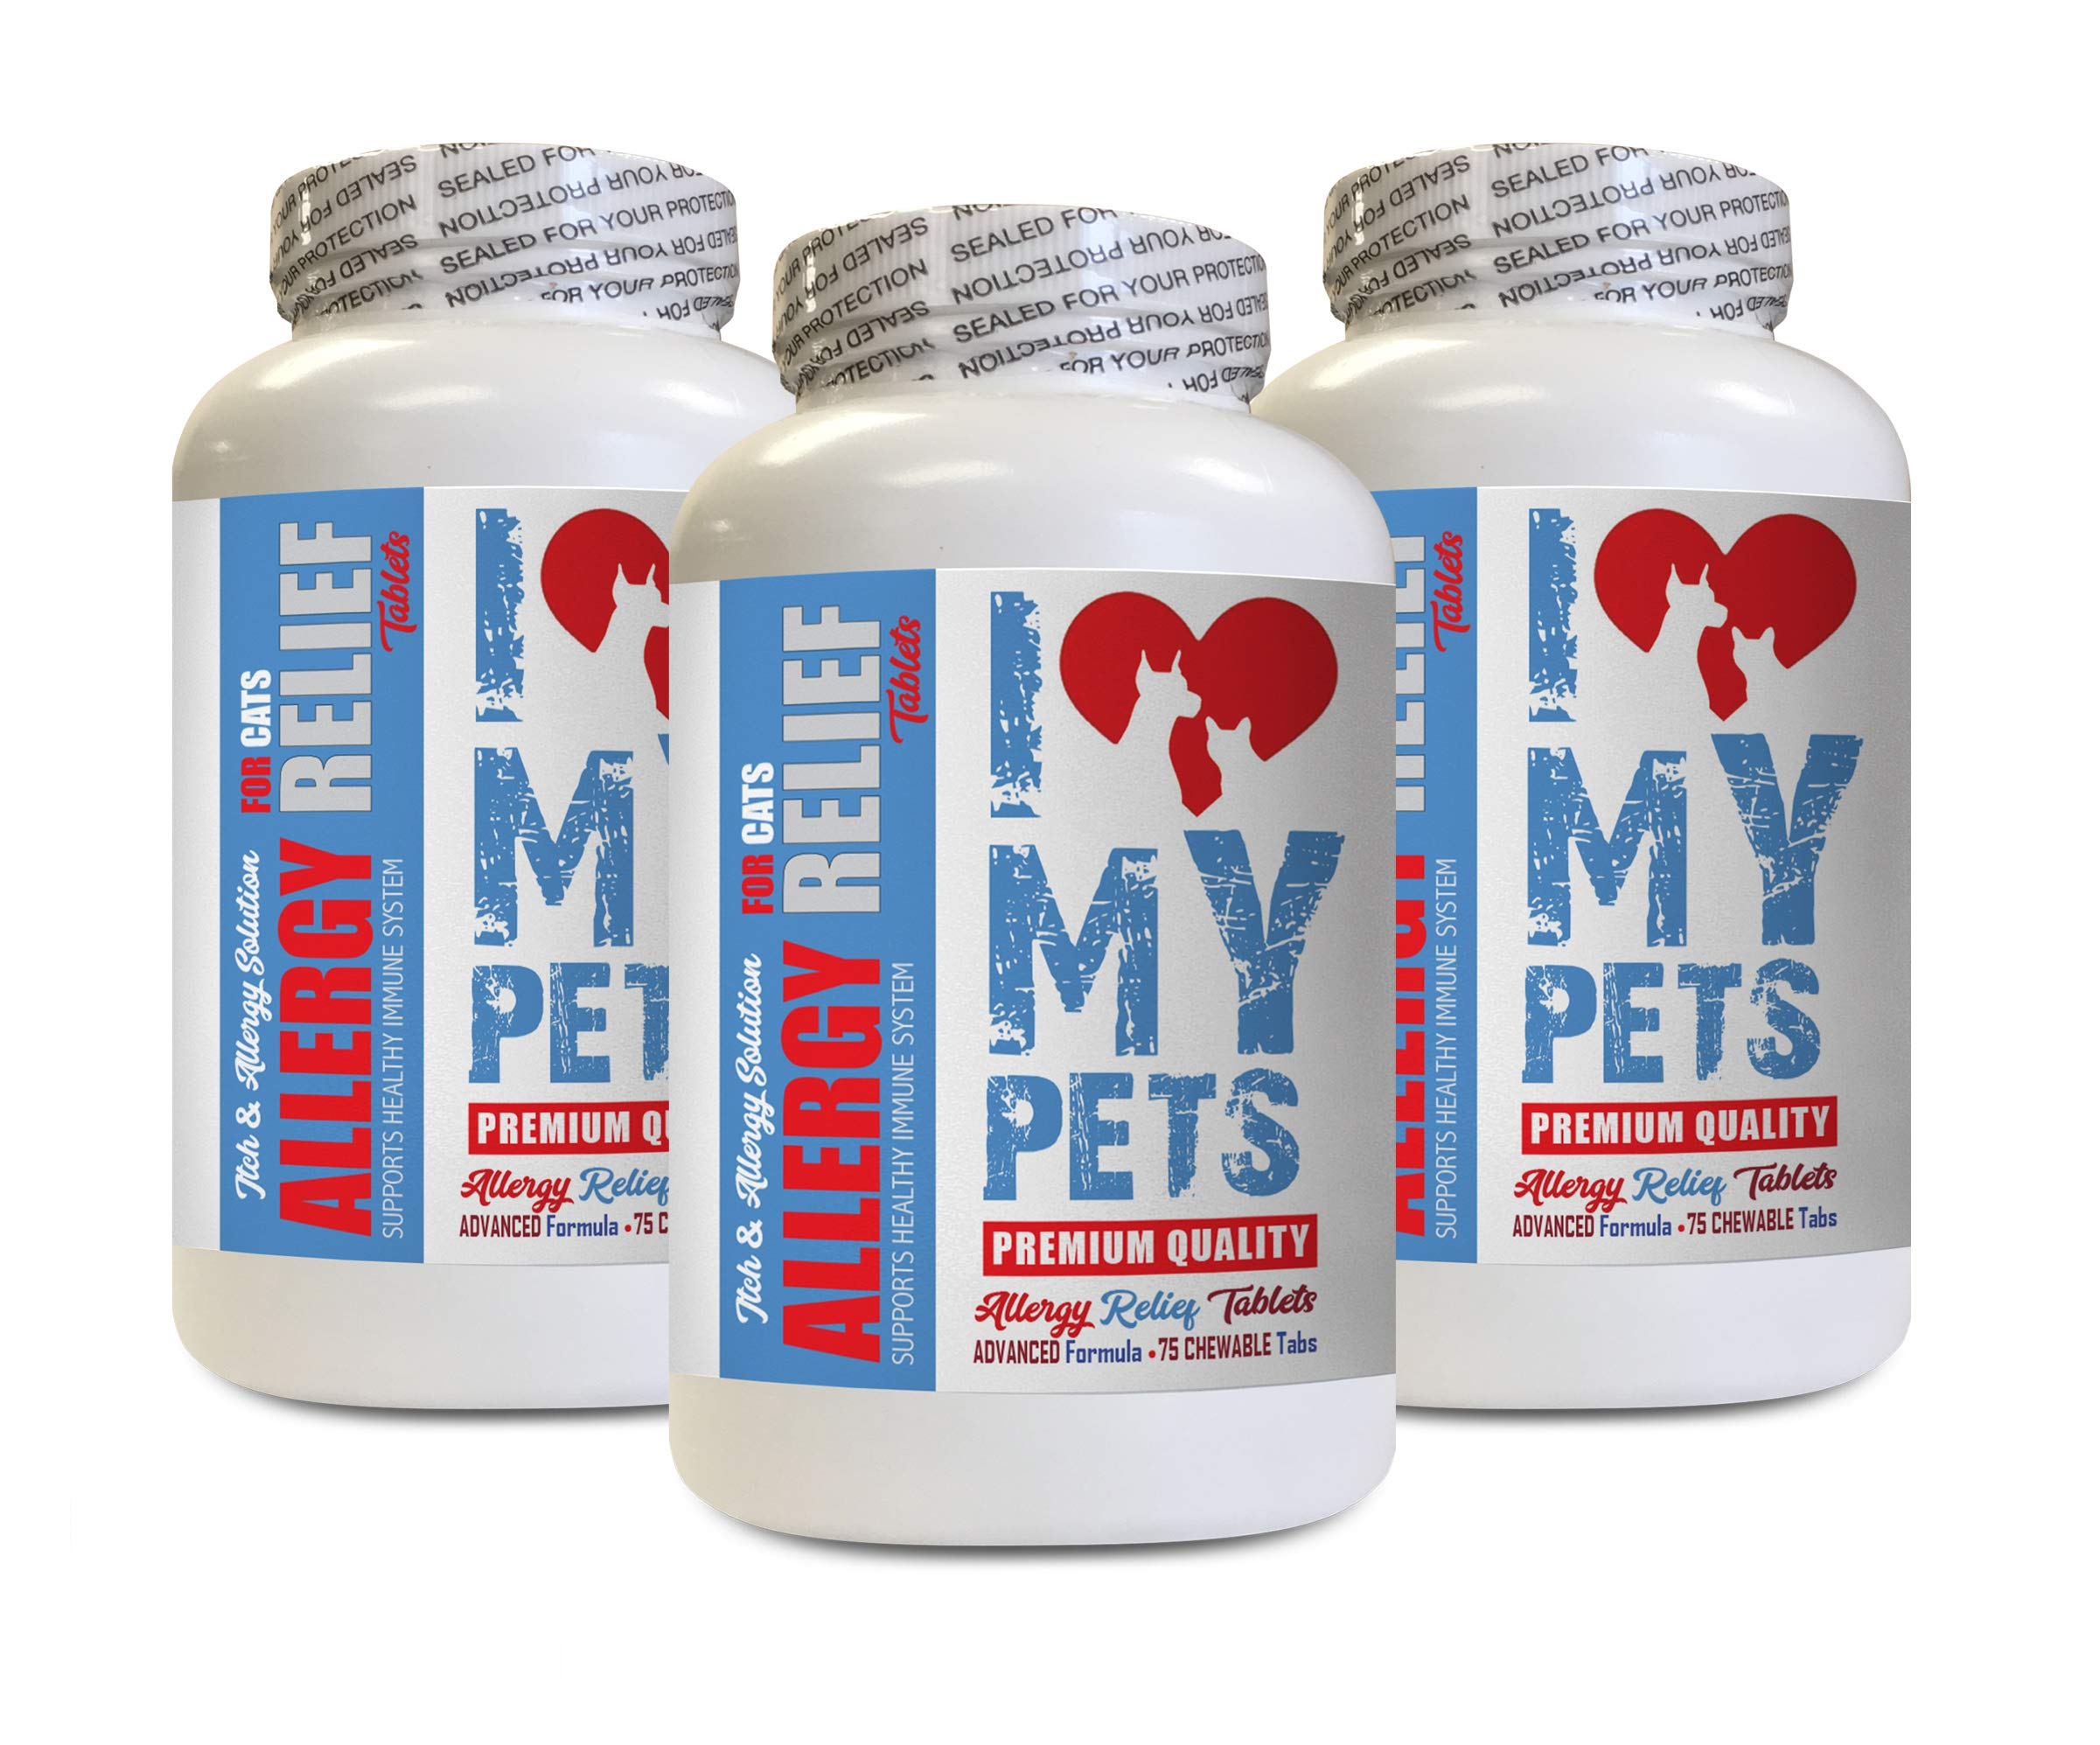 I LOVE MY PETS cat Skin and Itch - Cats Allergy Relief - Itch Relief - Premium Supplement - Treats - cat Skin and Itch Relief - 225 Tablets (3 Bottles) by I LOVE MY PETS